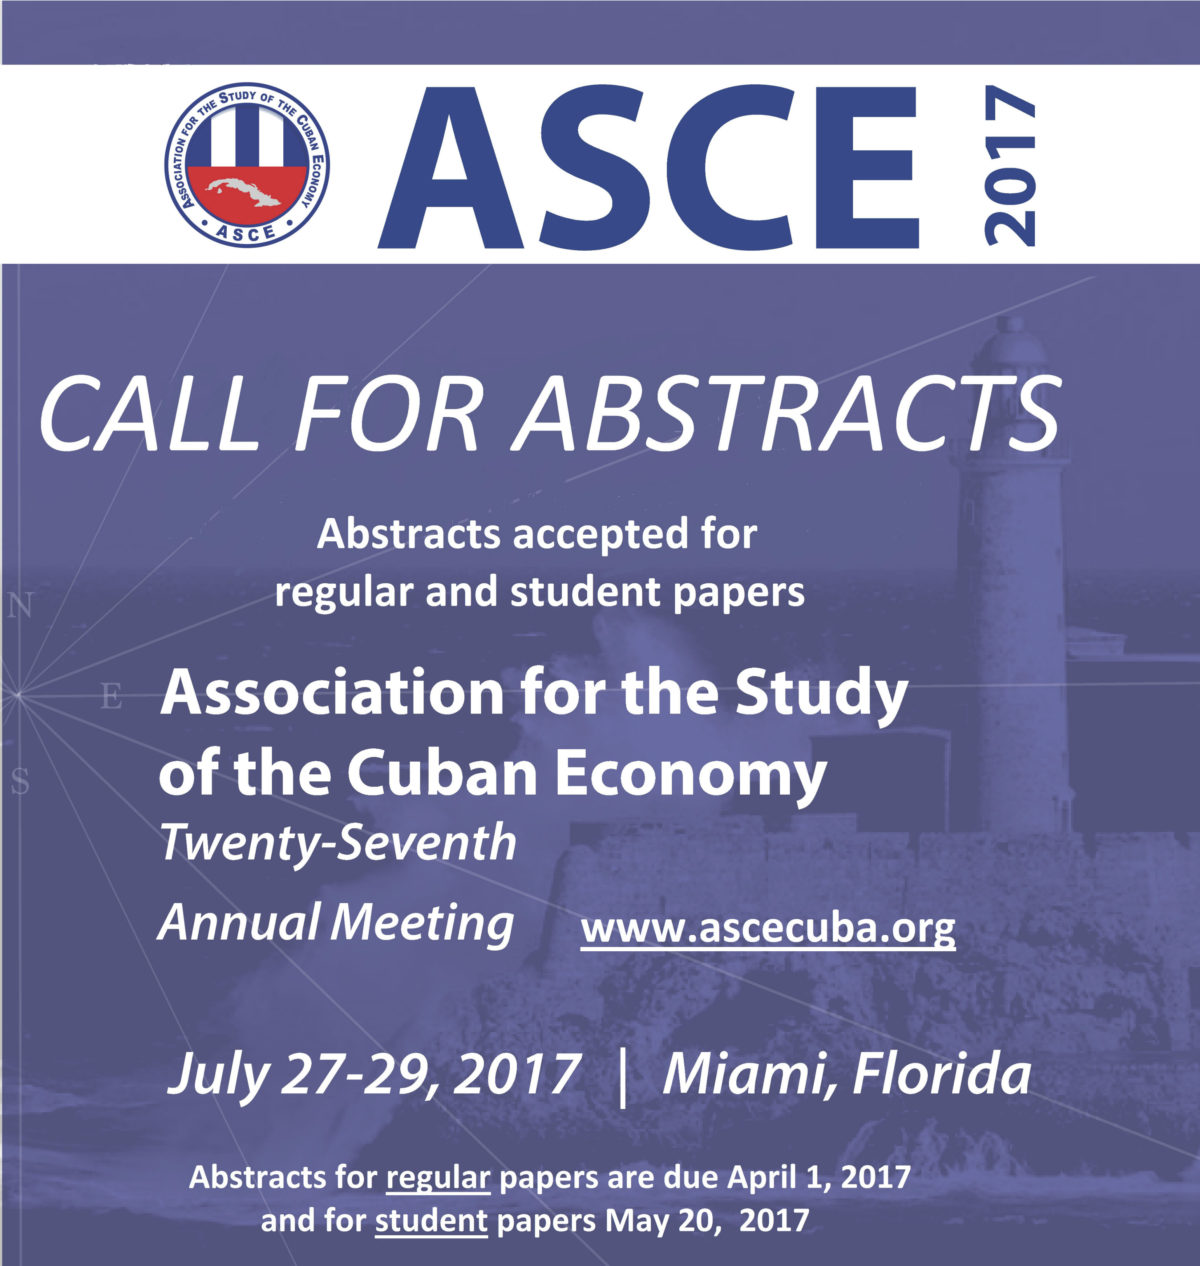 ASCE 2017 Call for abstracts